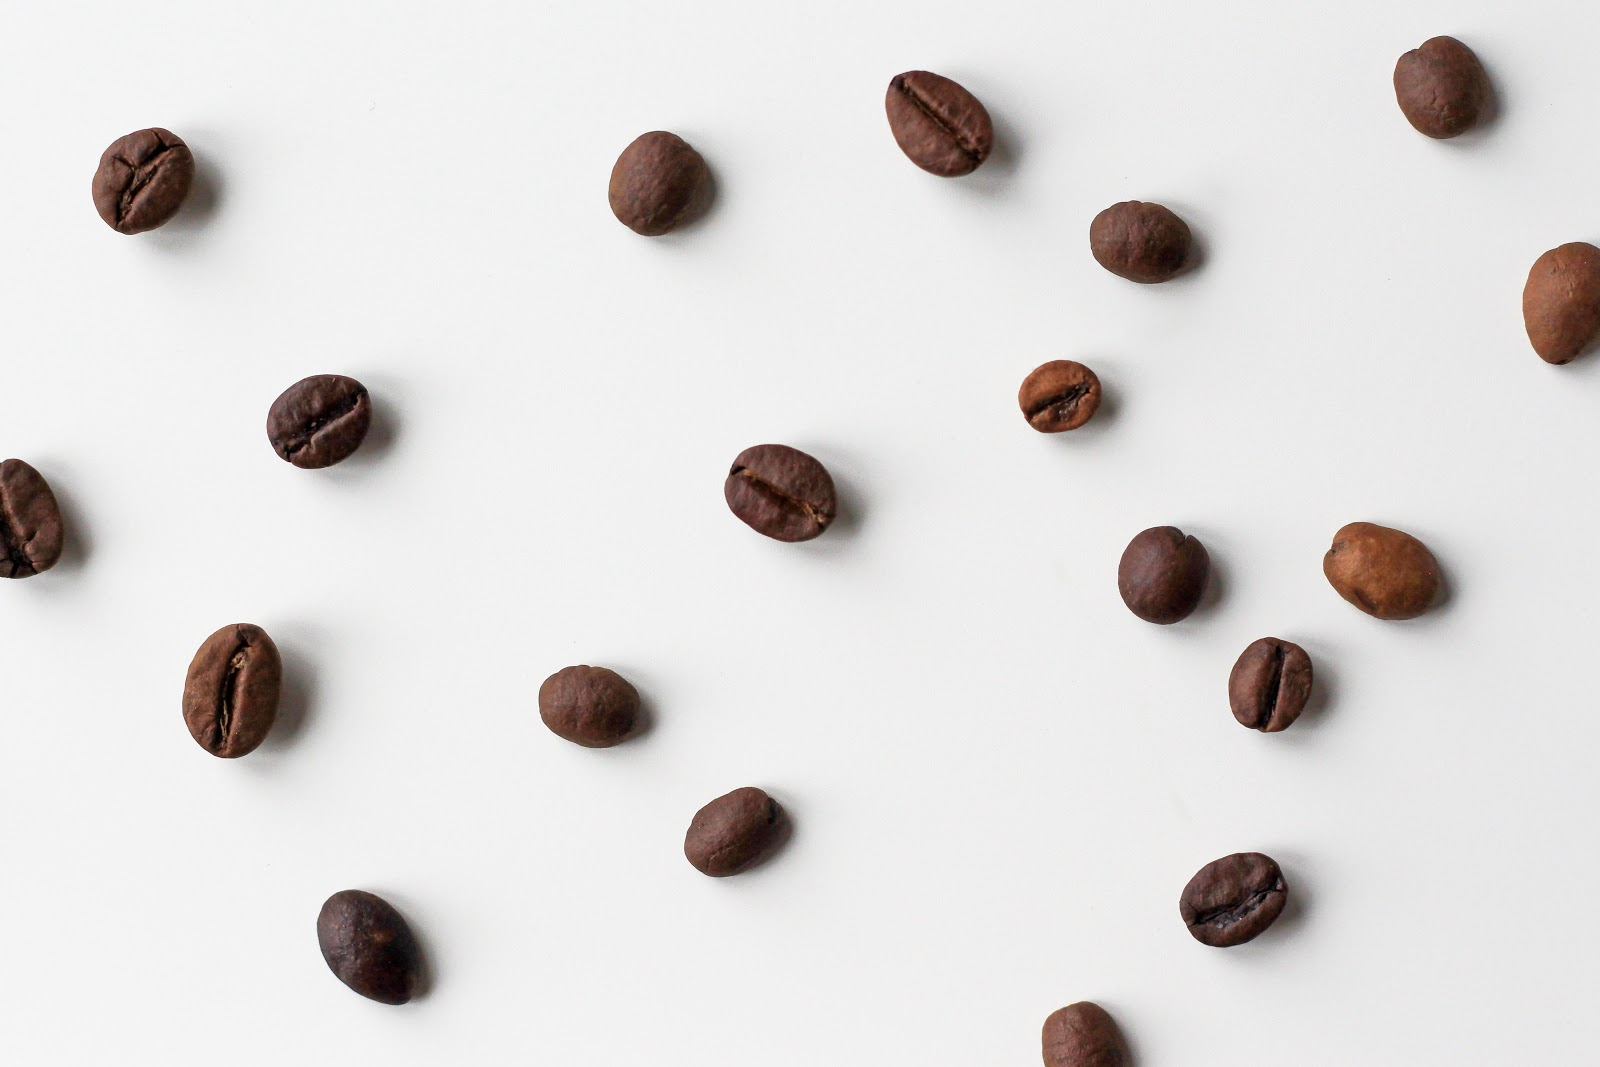 coffee beans scattered across the table